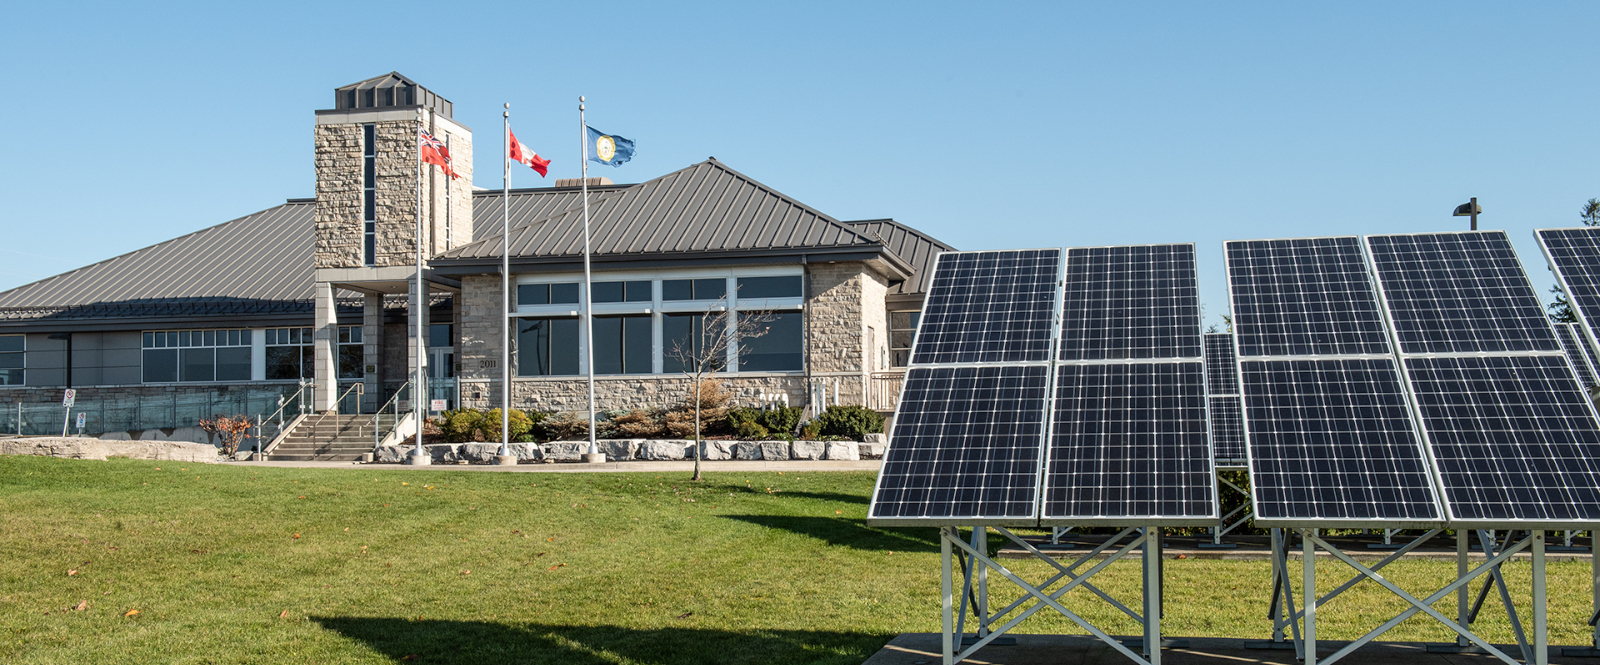 County building with large solar panels on property